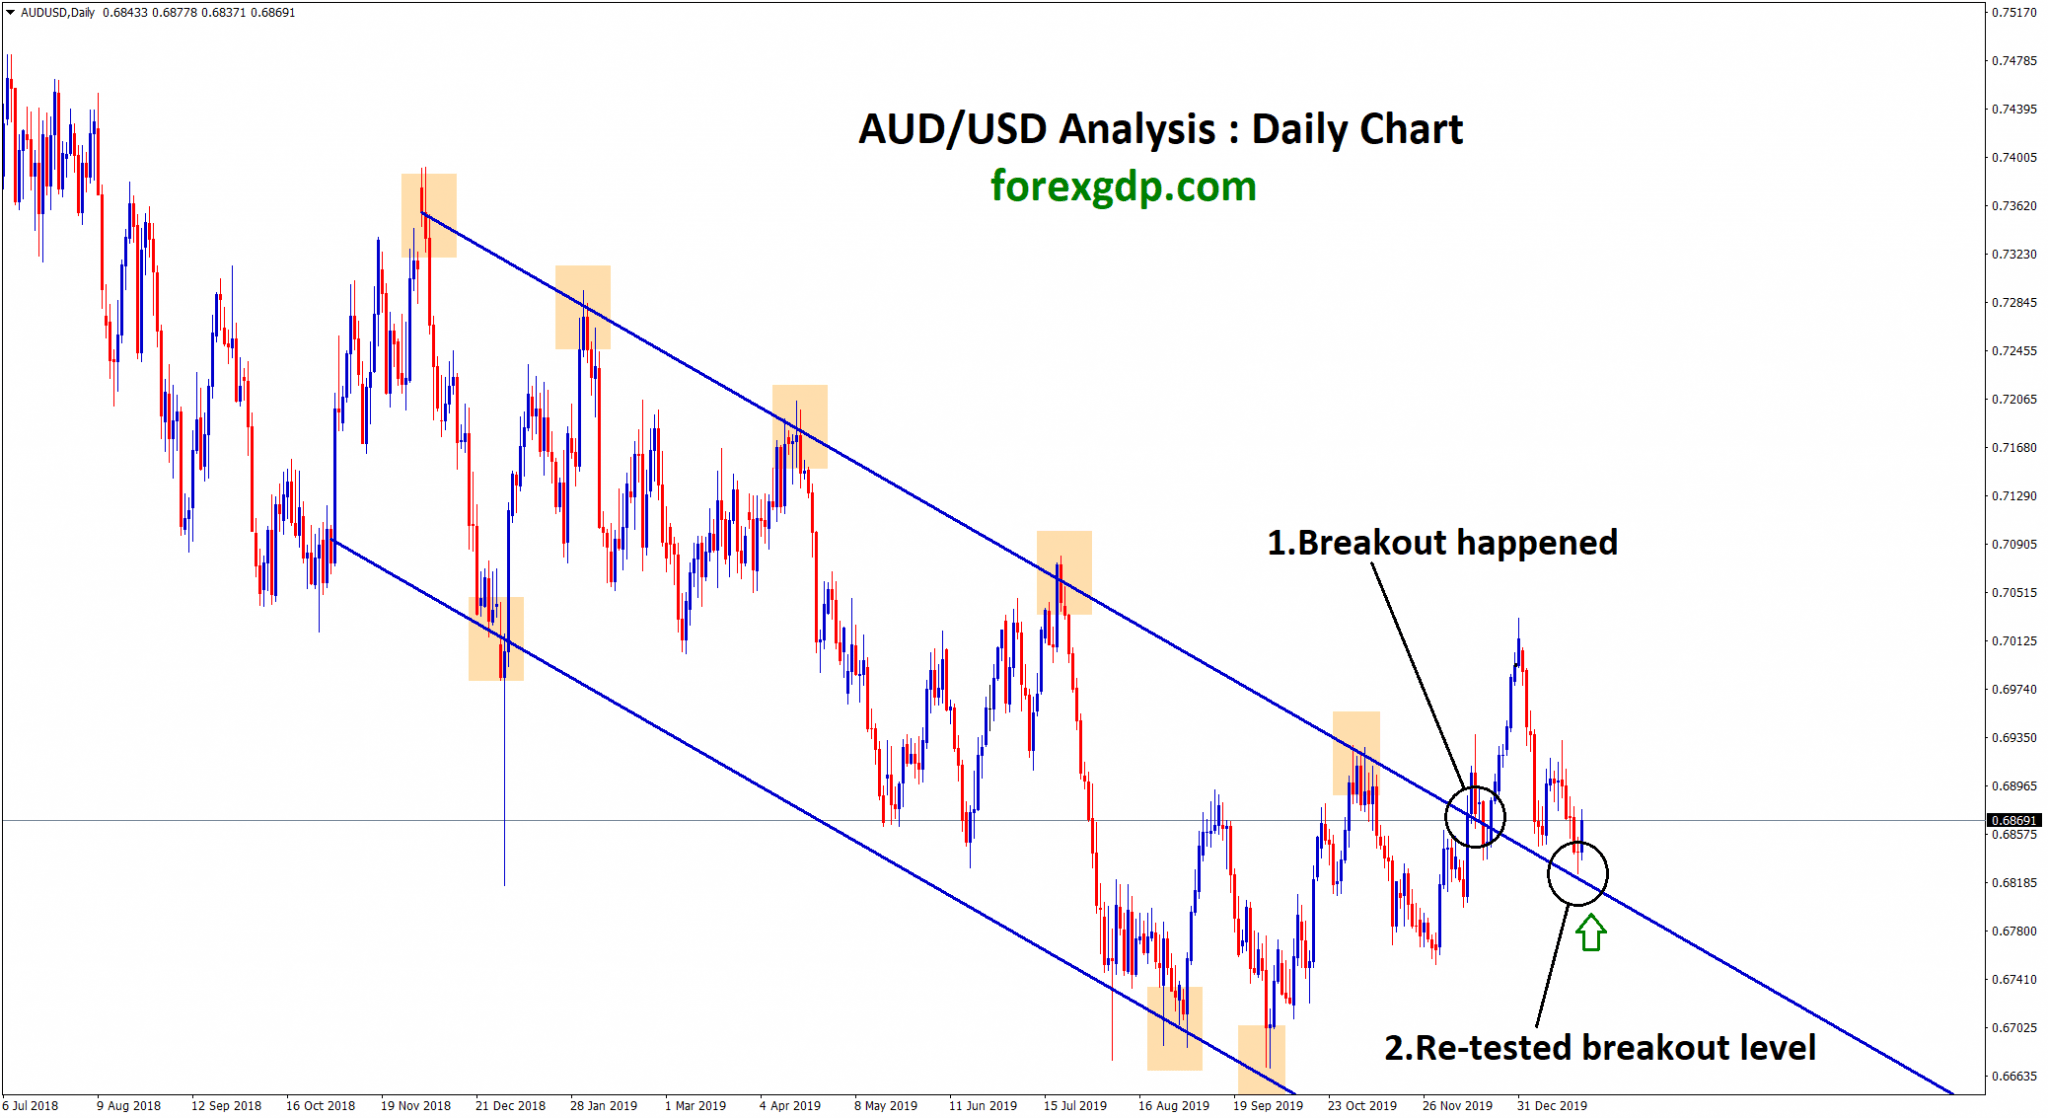 aud usd re tested the breakout level in daily chart